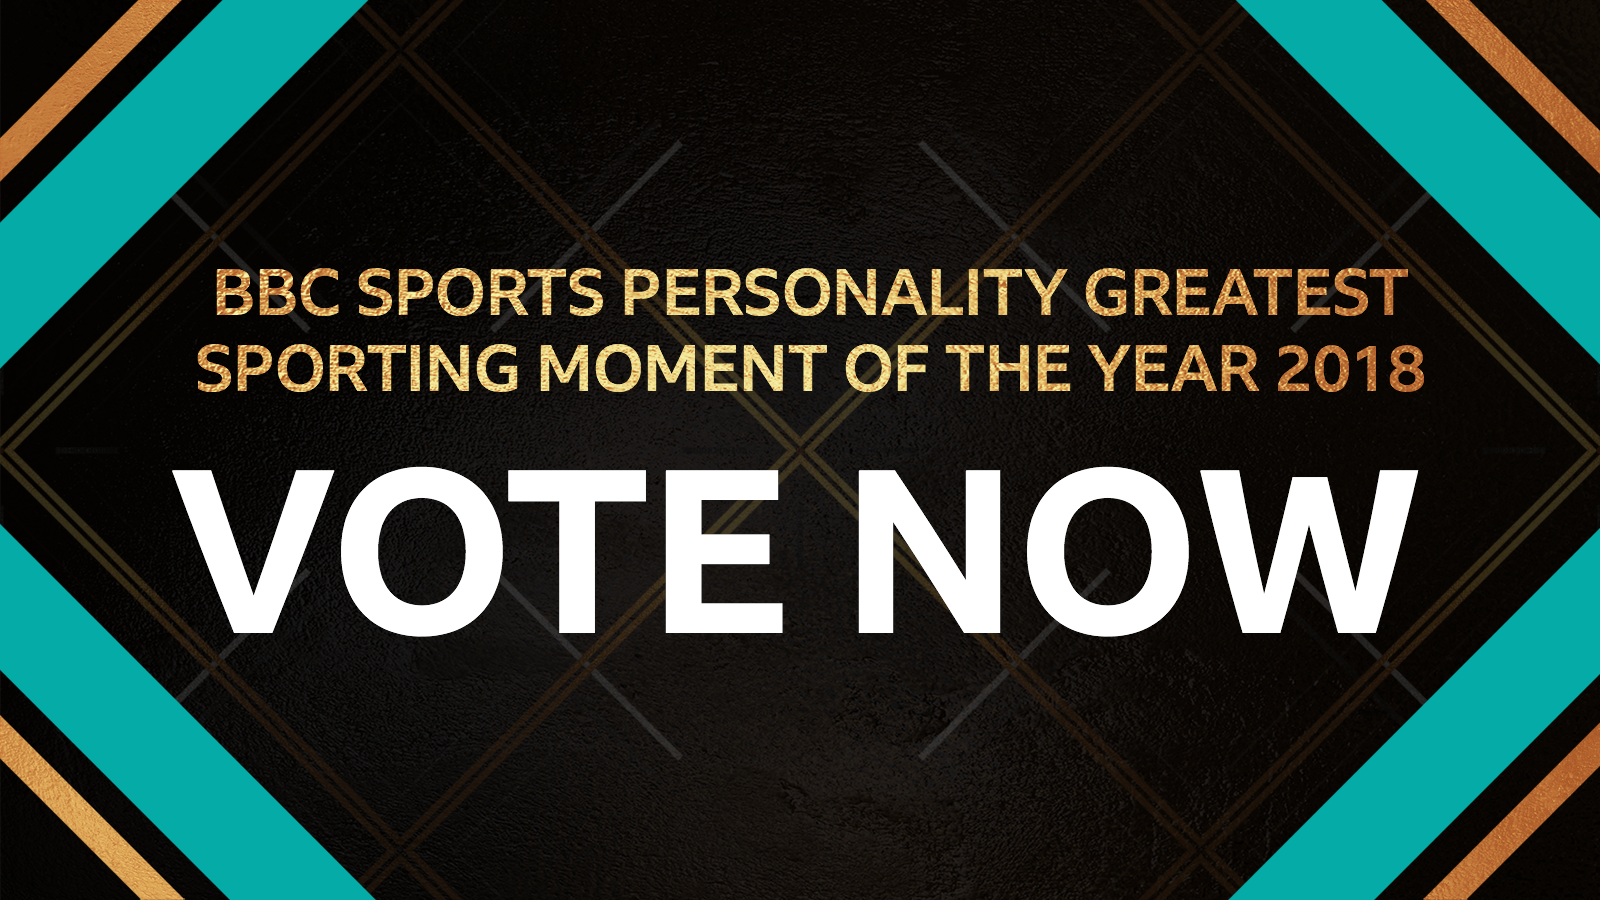 Sports Personality: Vote for your Greatest Sporting Moment of the Year